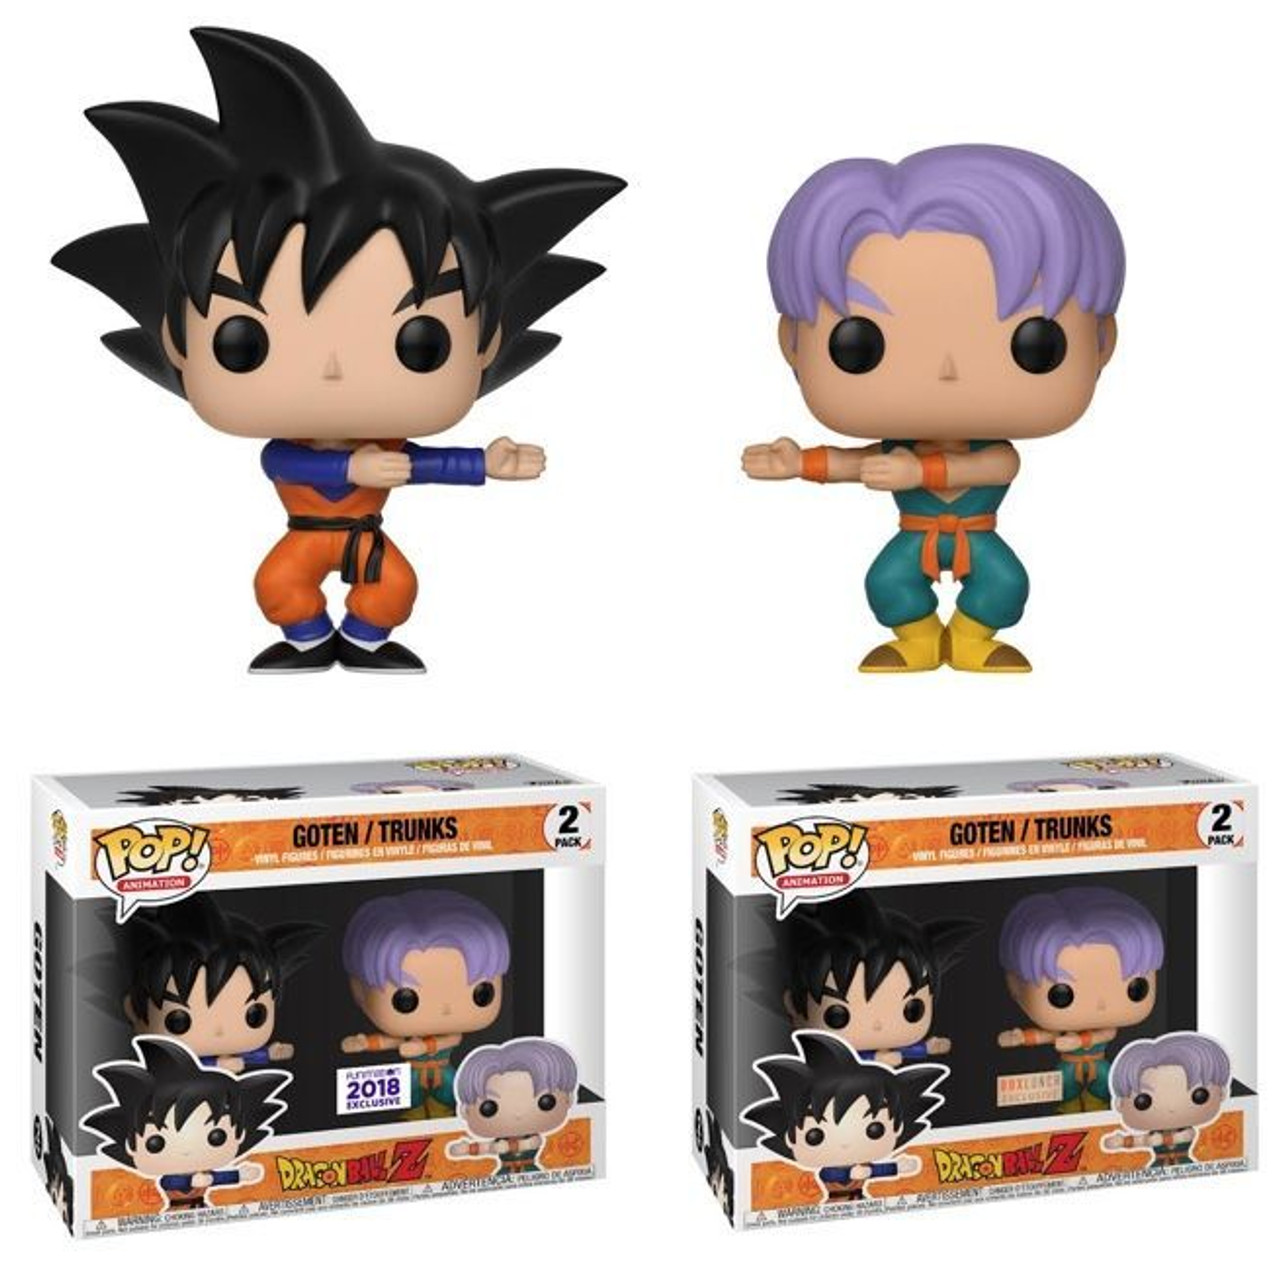 009850cb Goten/Trunks Dragon Ball Z Lunch Box Exclusive Funko Pop 2 Pack - Maverick  Autographs and Collectibles